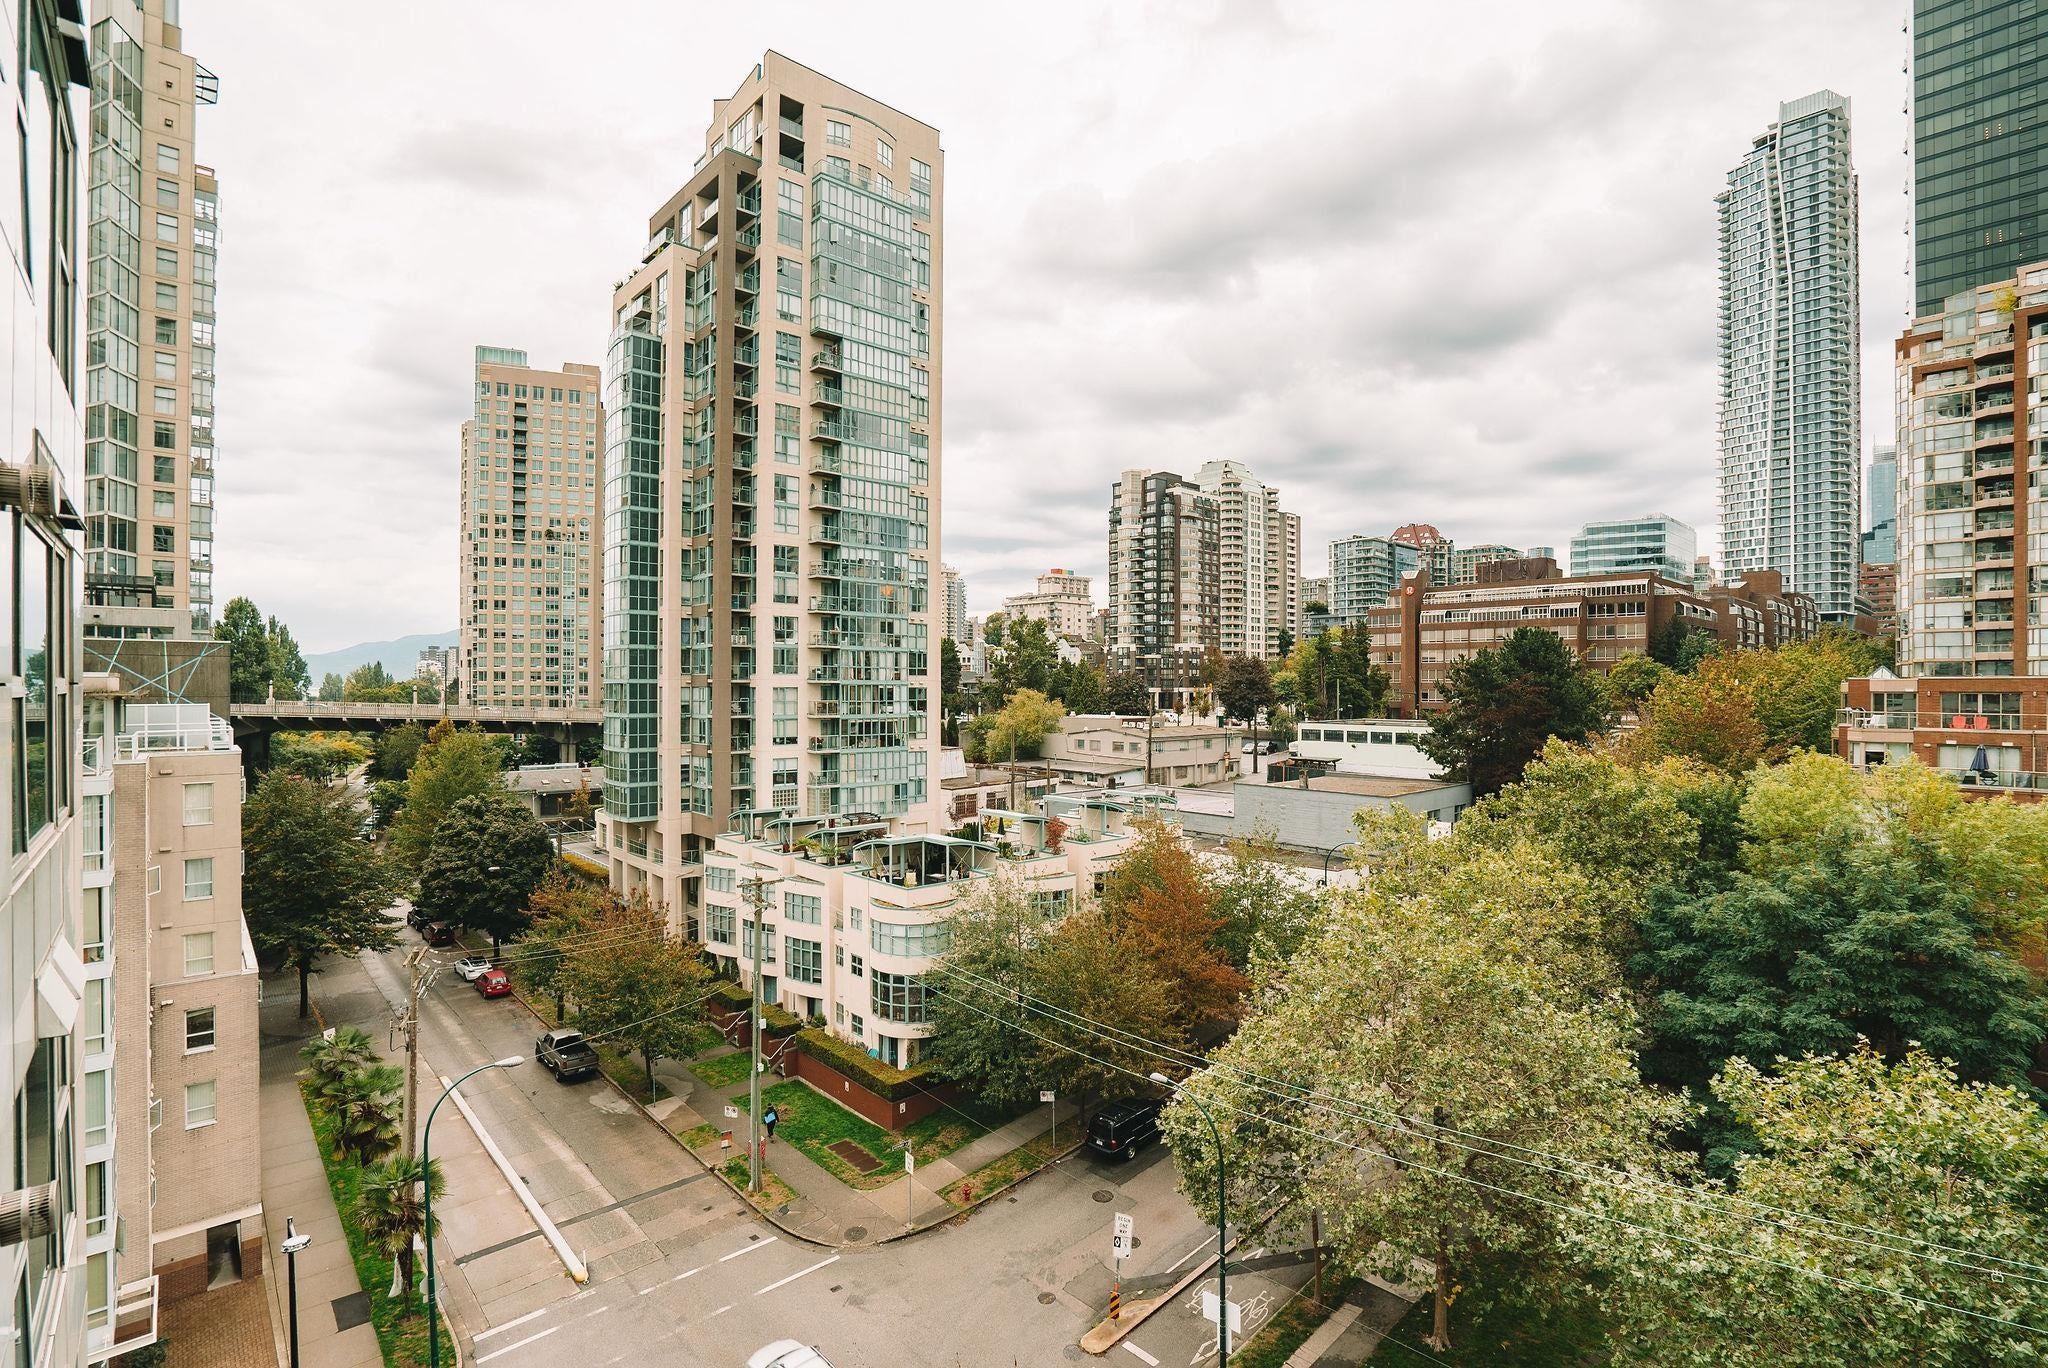 1009 1500 HORNBY STREET - Yaletown Apartment/Condo for sale, 2 Bedrooms (R2617441) - #29